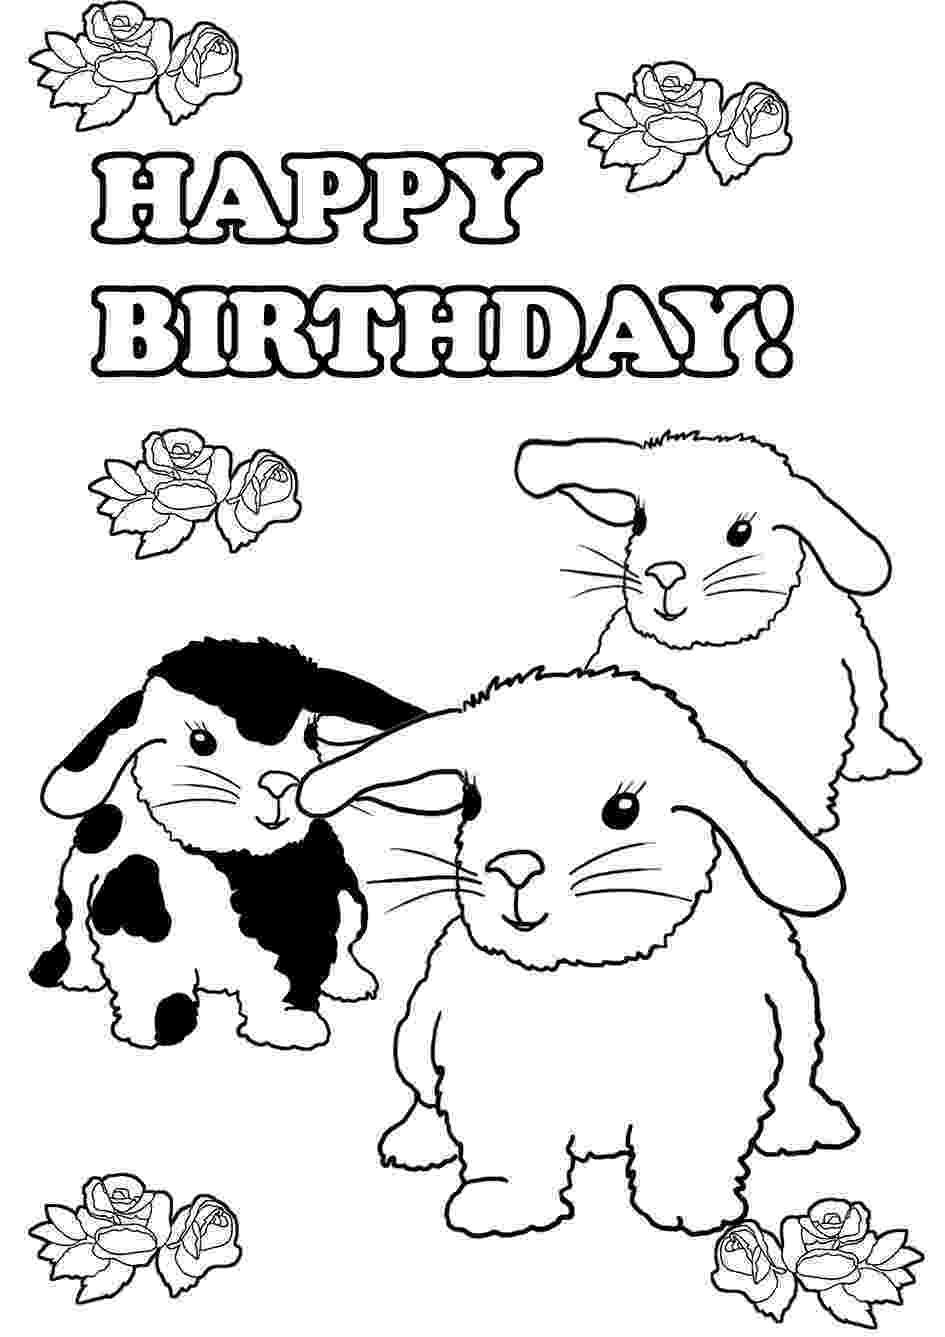 happy birthday coloring pages printable birthday coloring pages birthday happy pages coloring printable